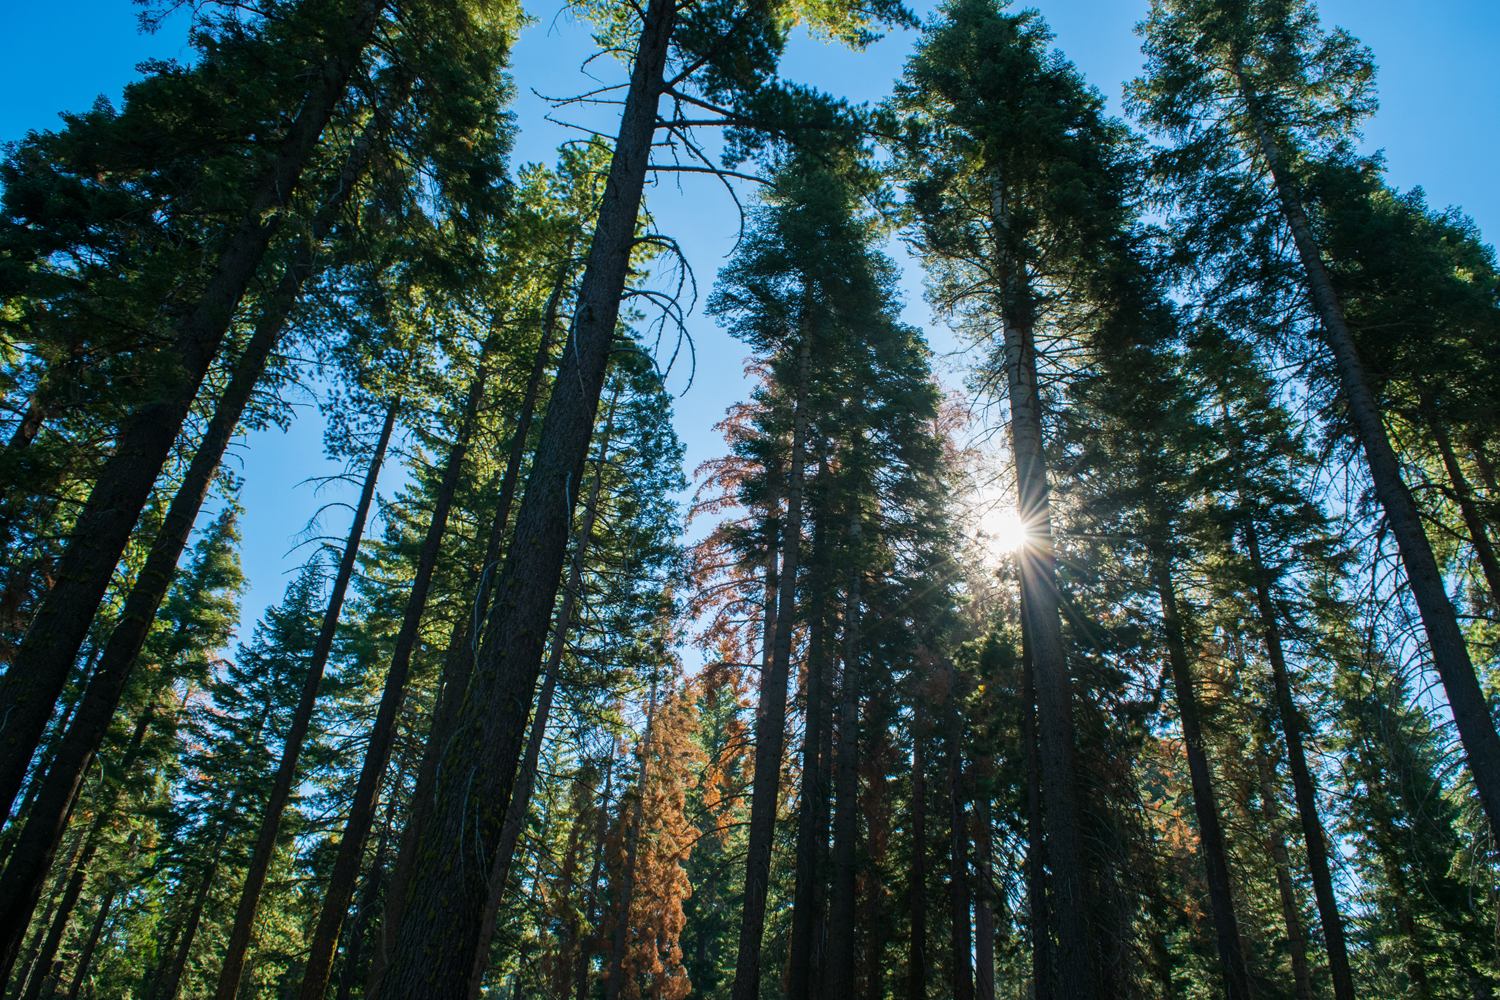 Building Climate Resilience Through Private Investment in Forest Health